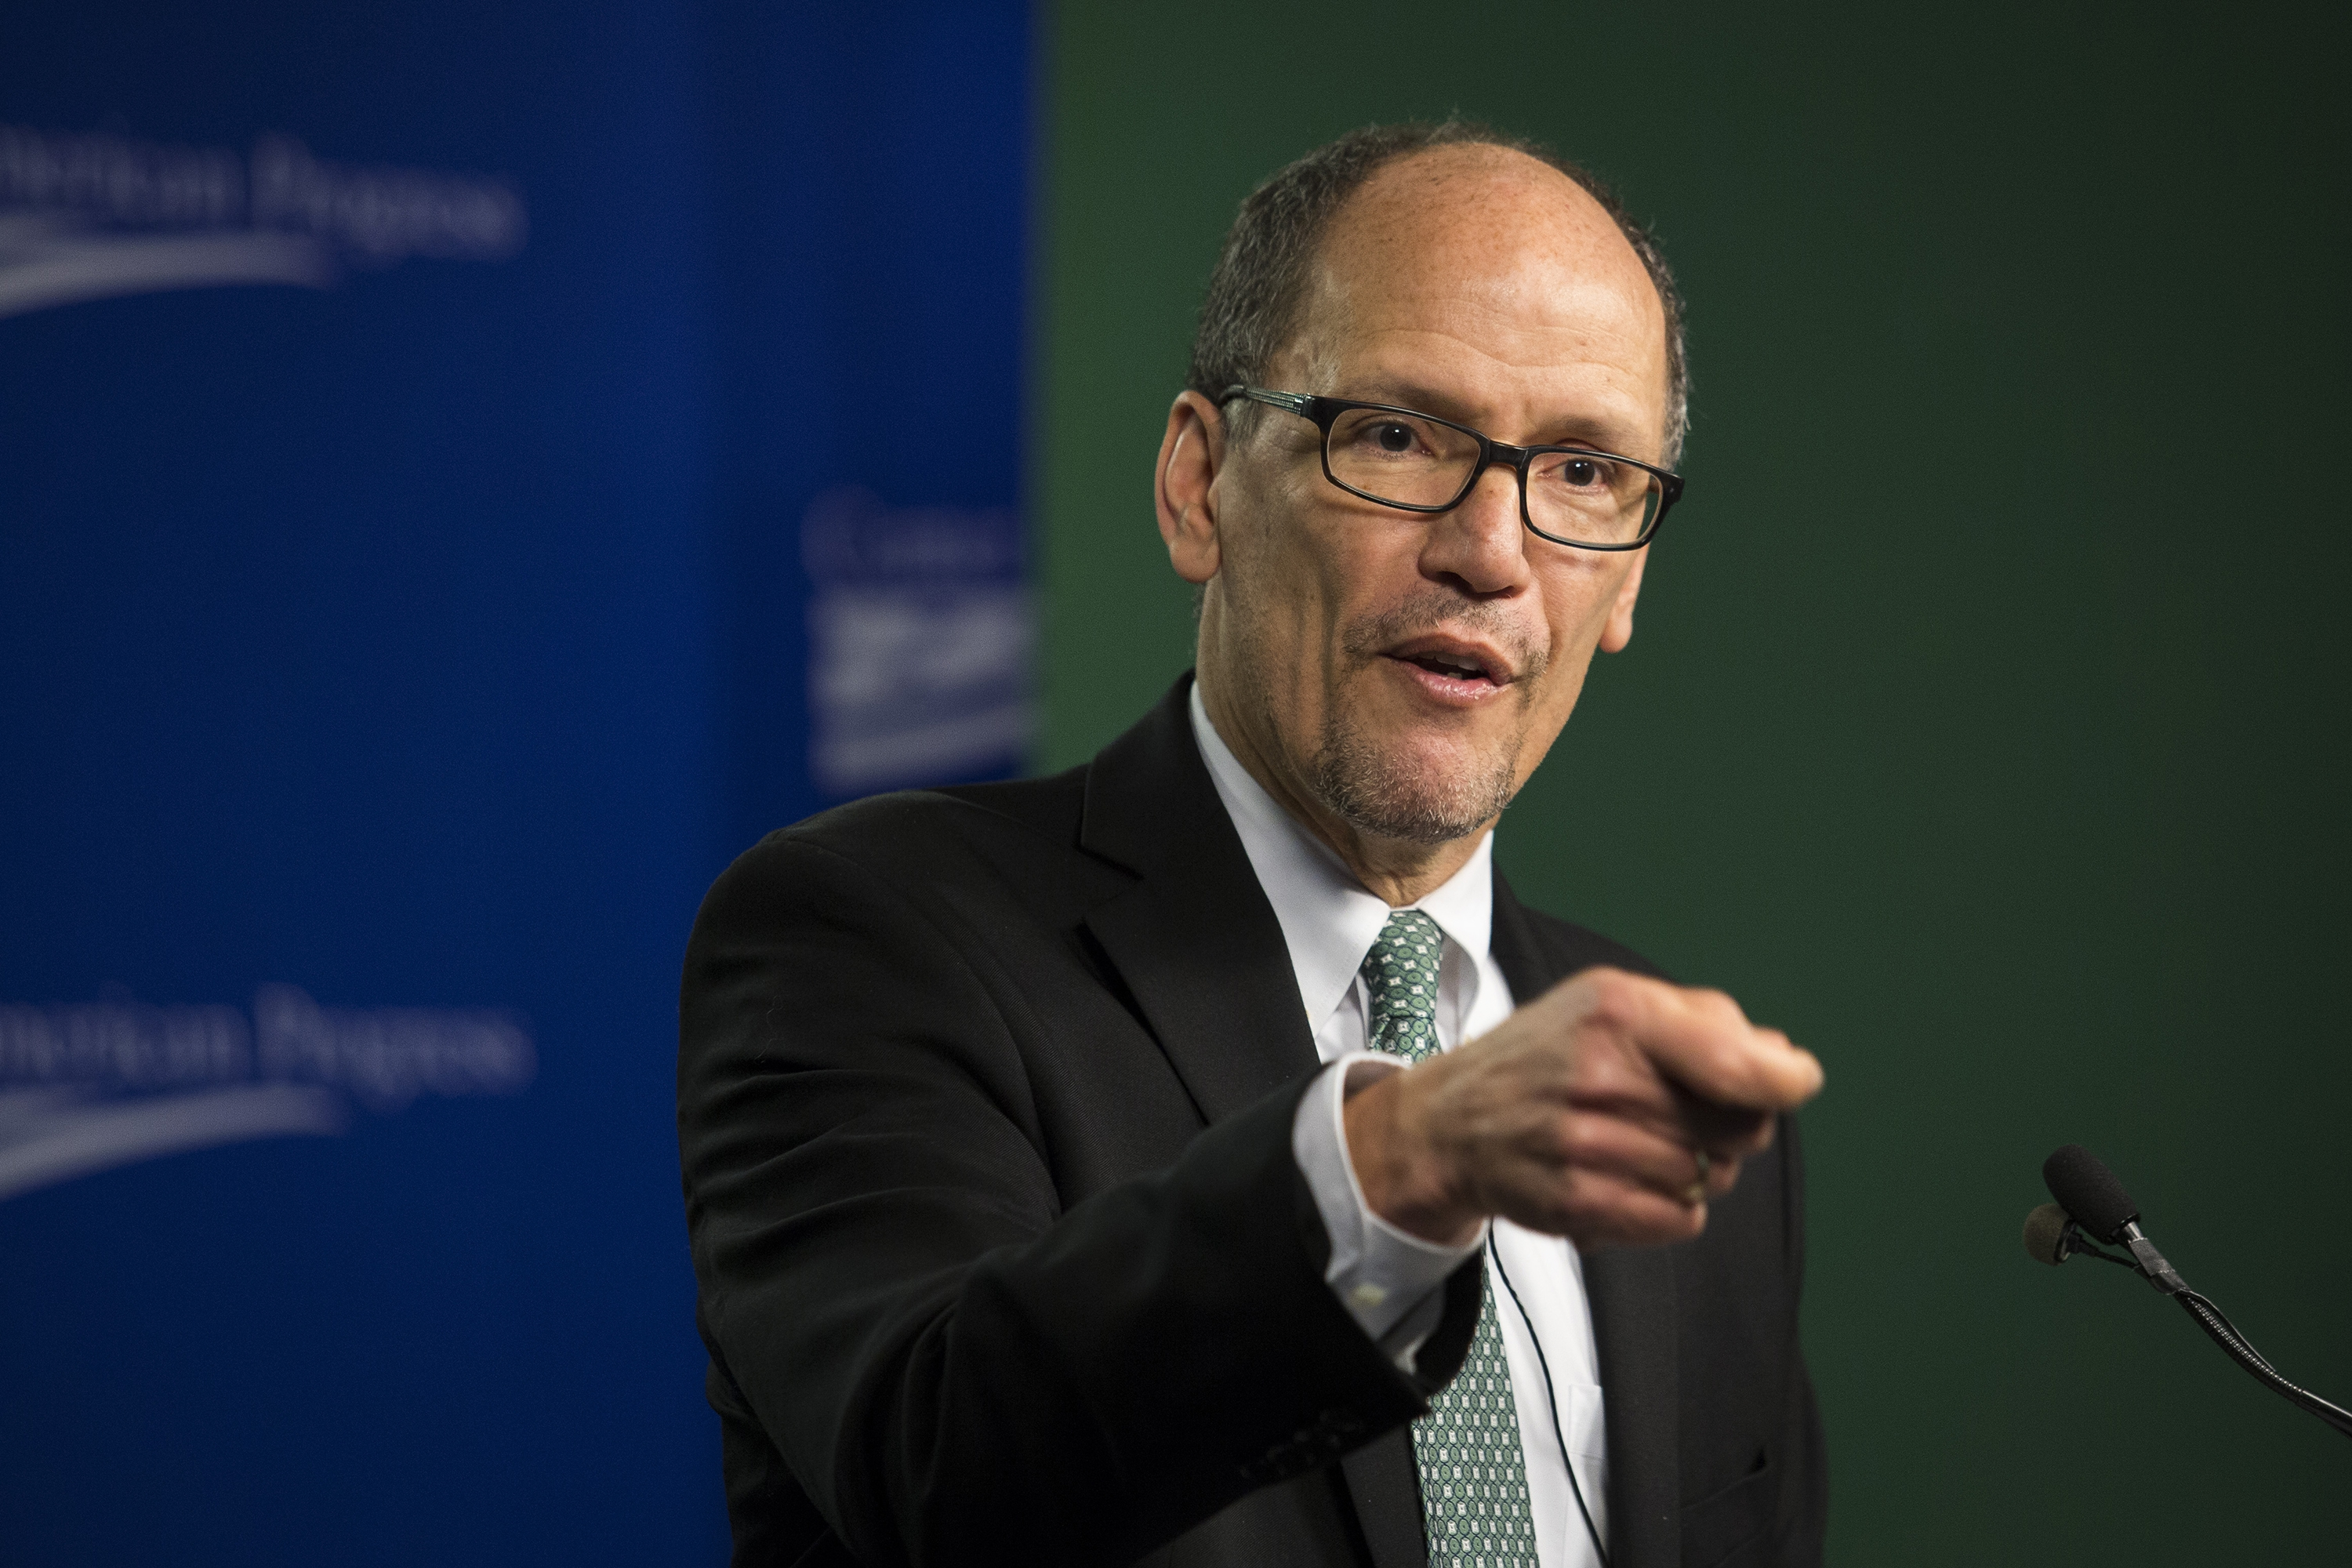 Thomas Perez, a possible running mate for Clinton, gives speech at National Press Club.